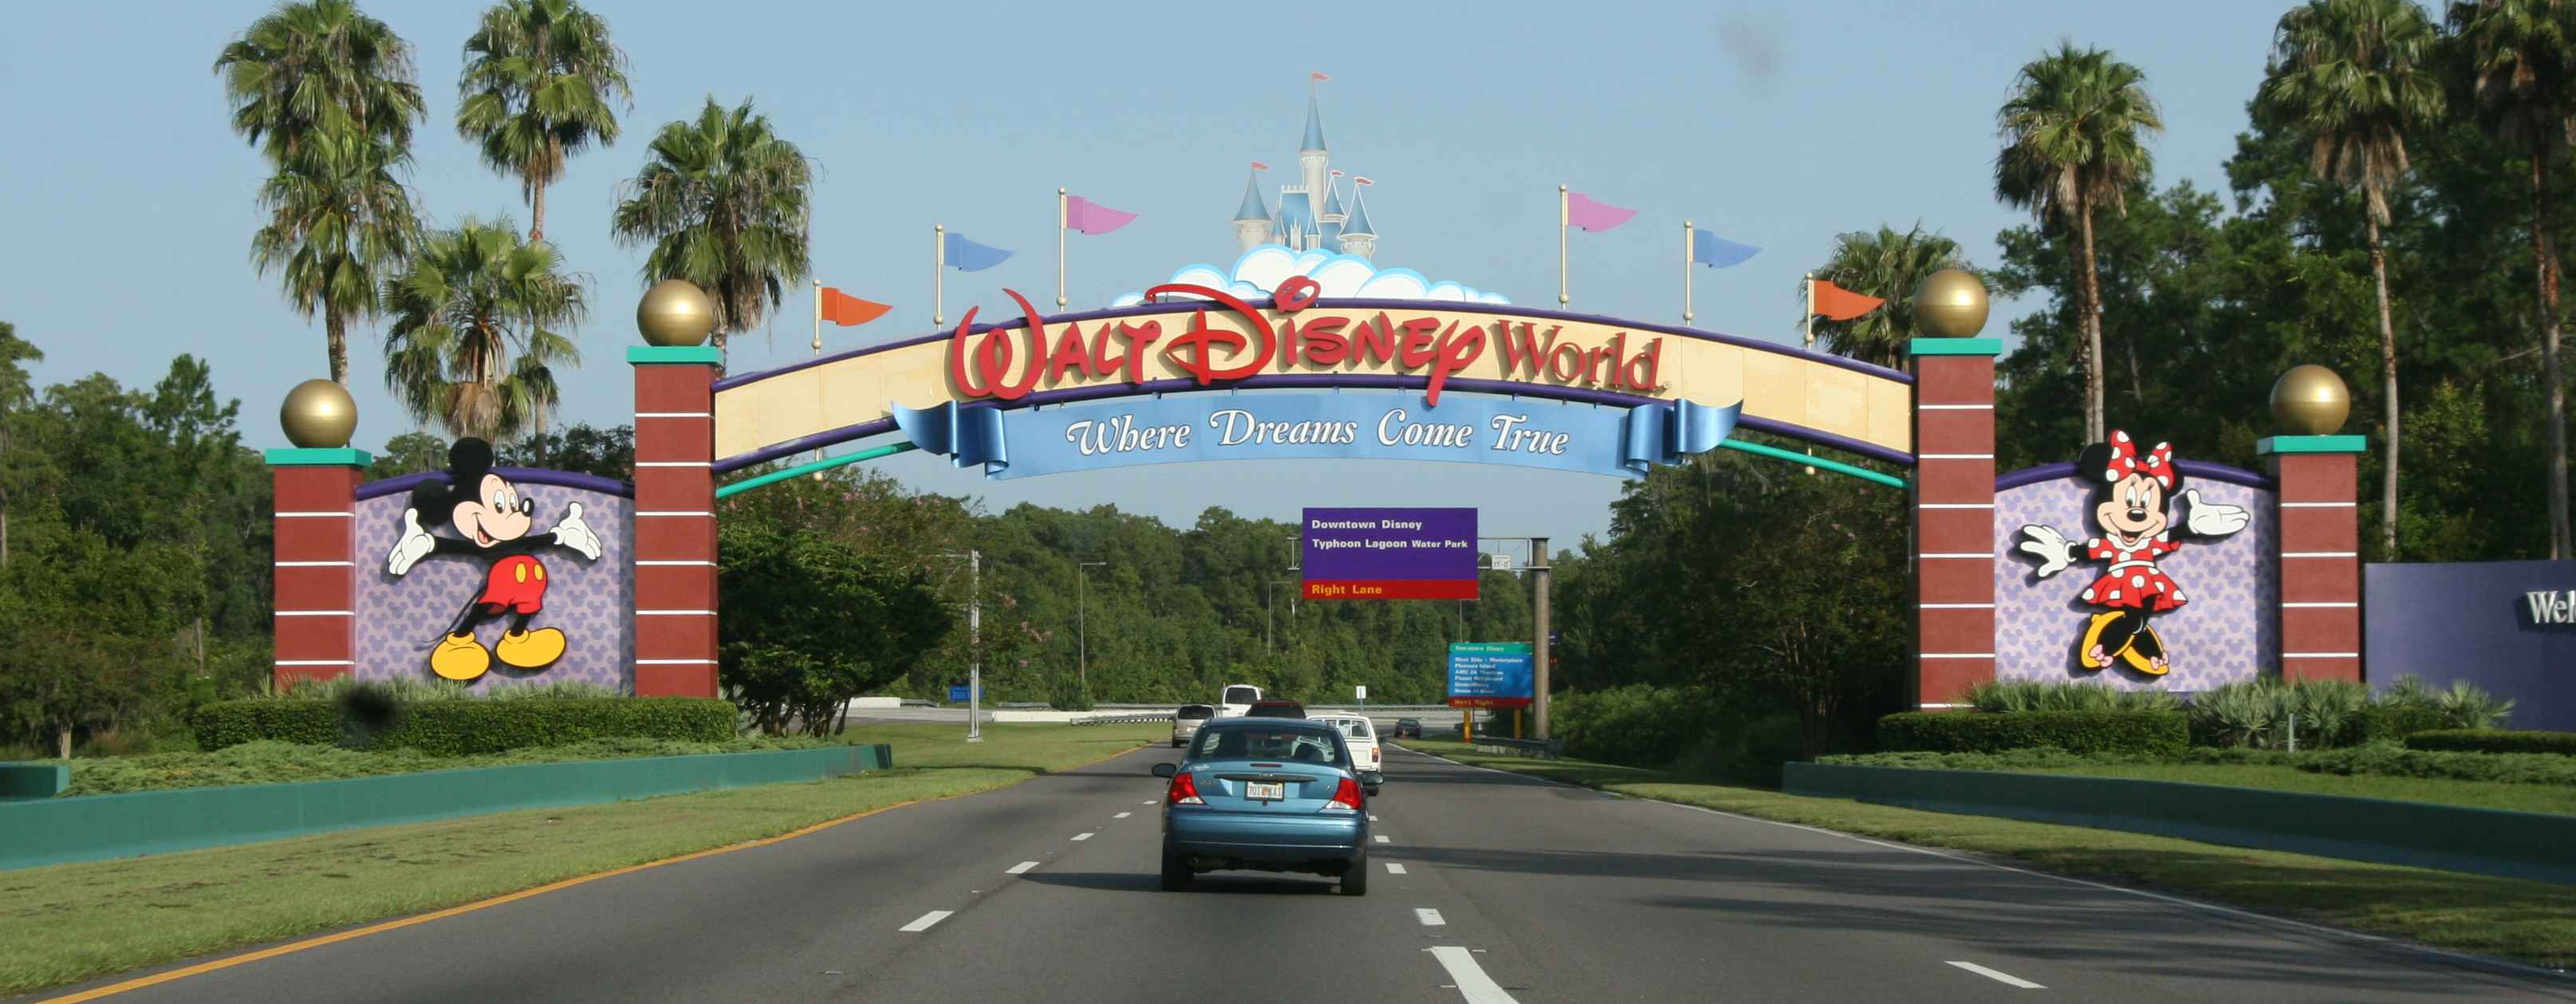 Disney_WDWsign_edit_sm